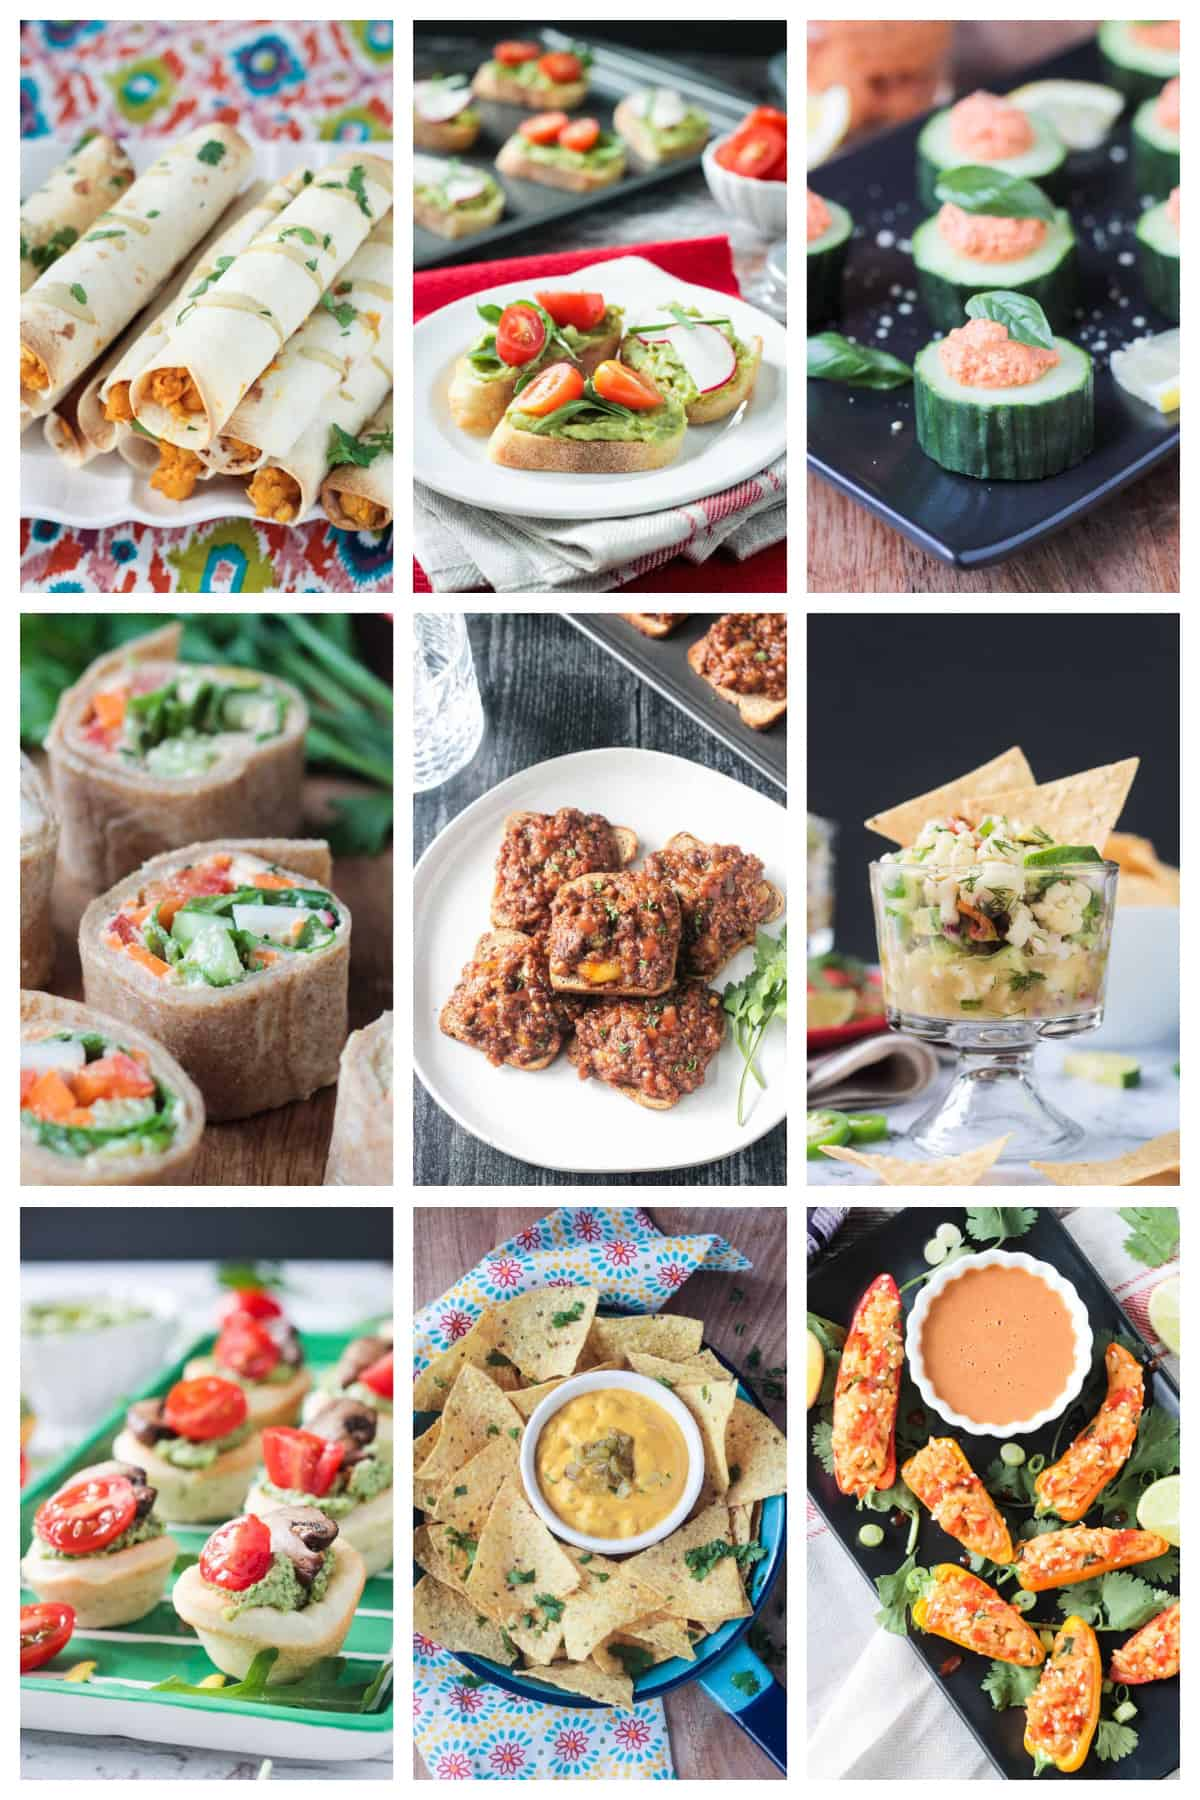 9 photo collage of a variety of vegan appetizers.